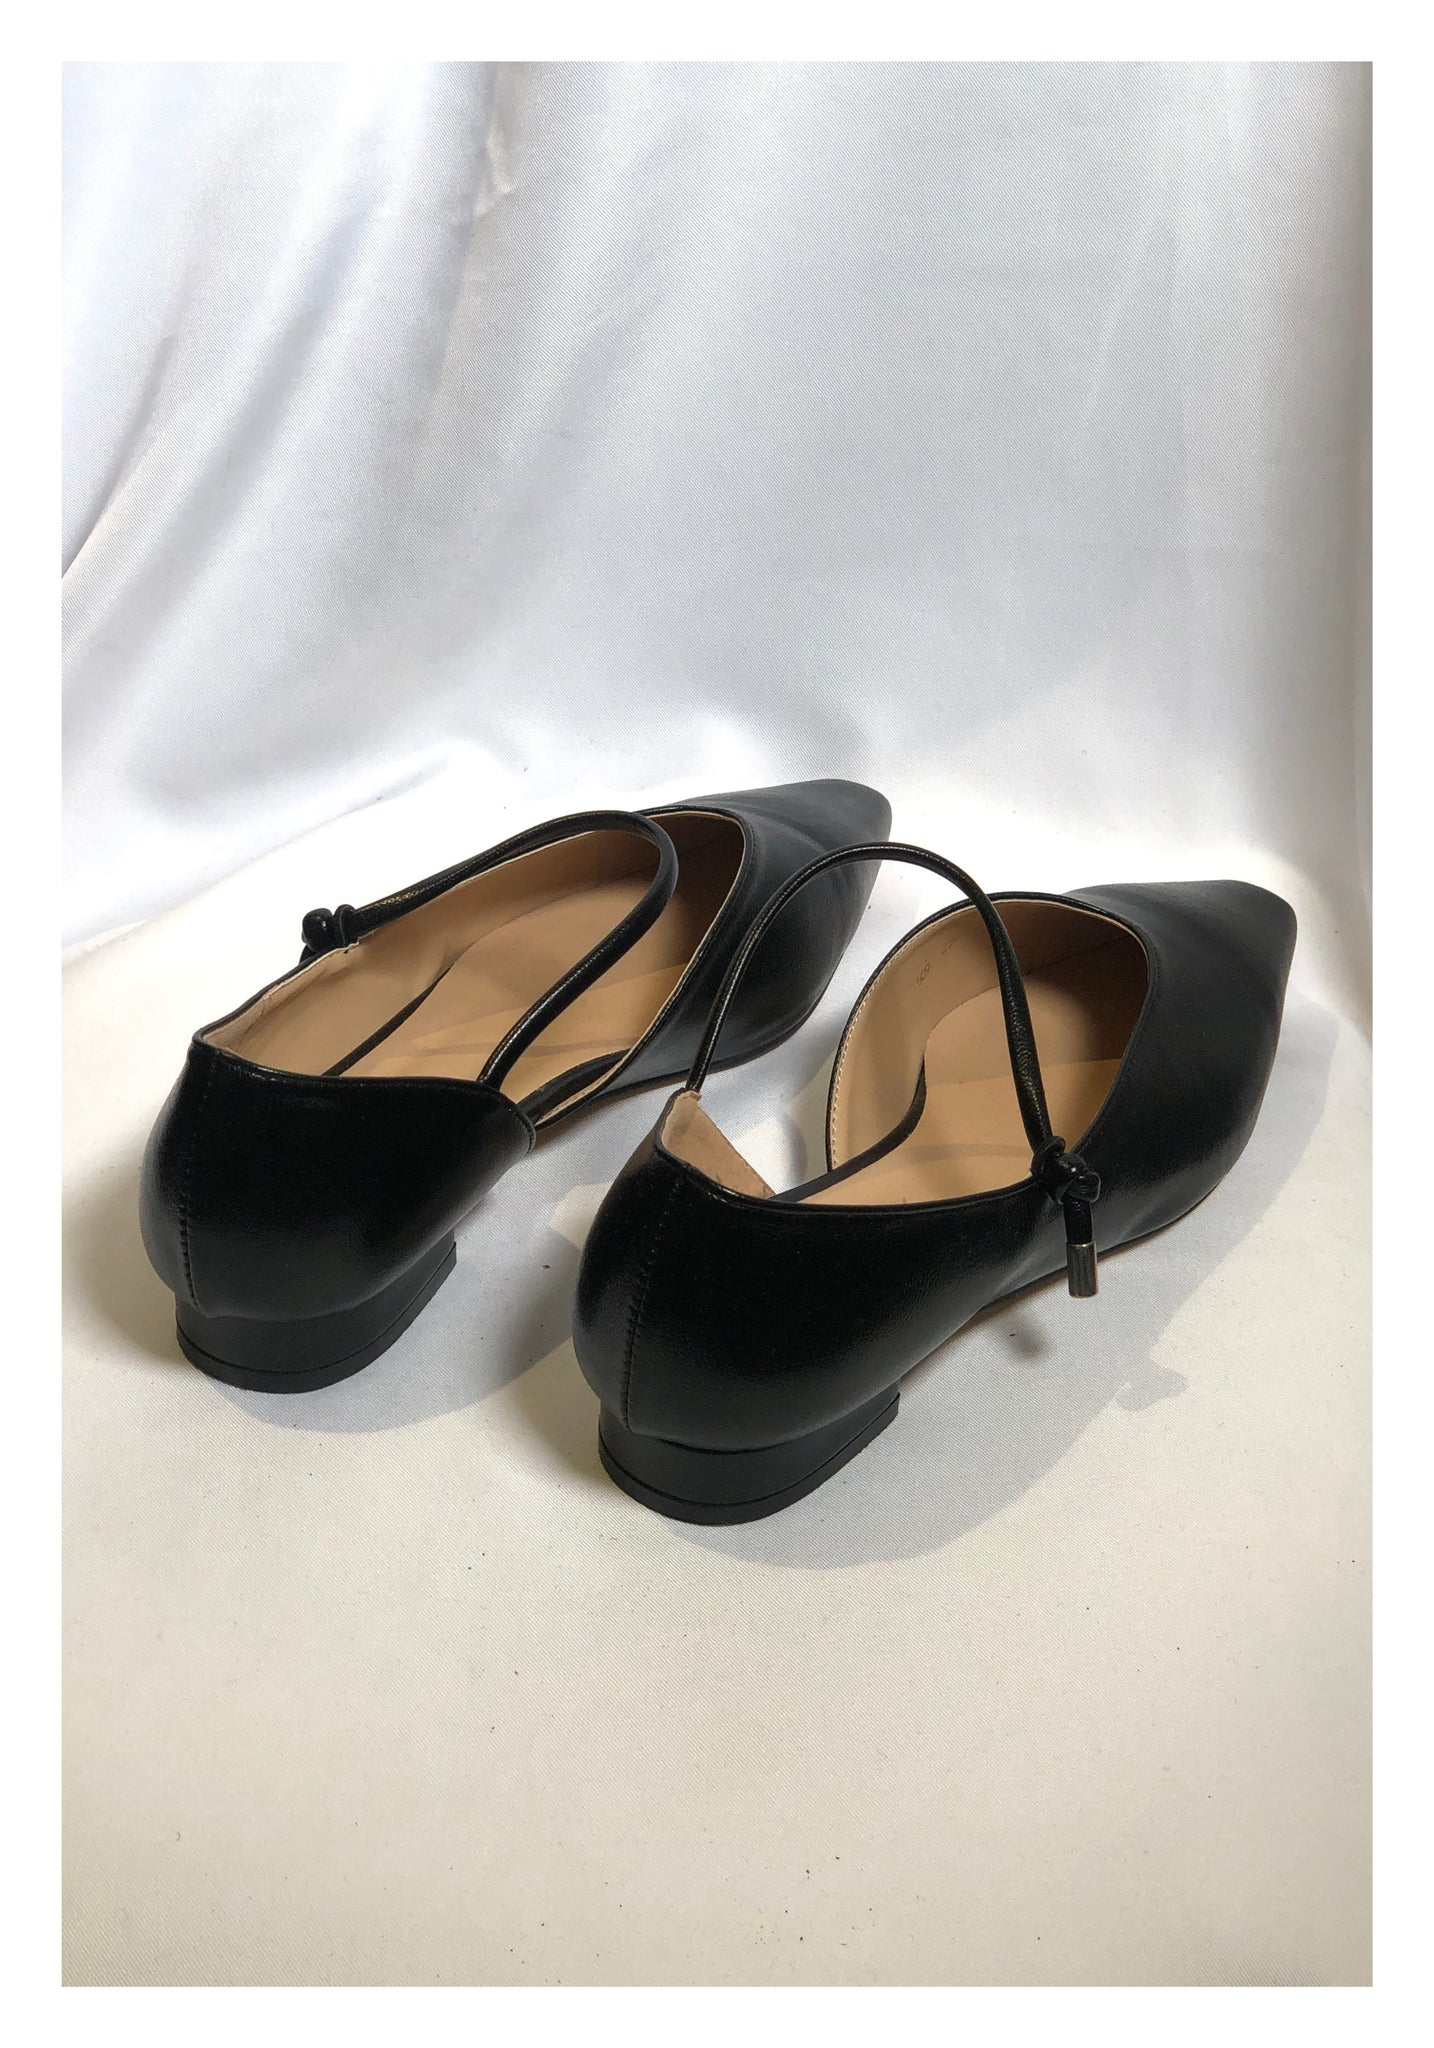 Sample Shoes - Pointed Strap Shoes Black